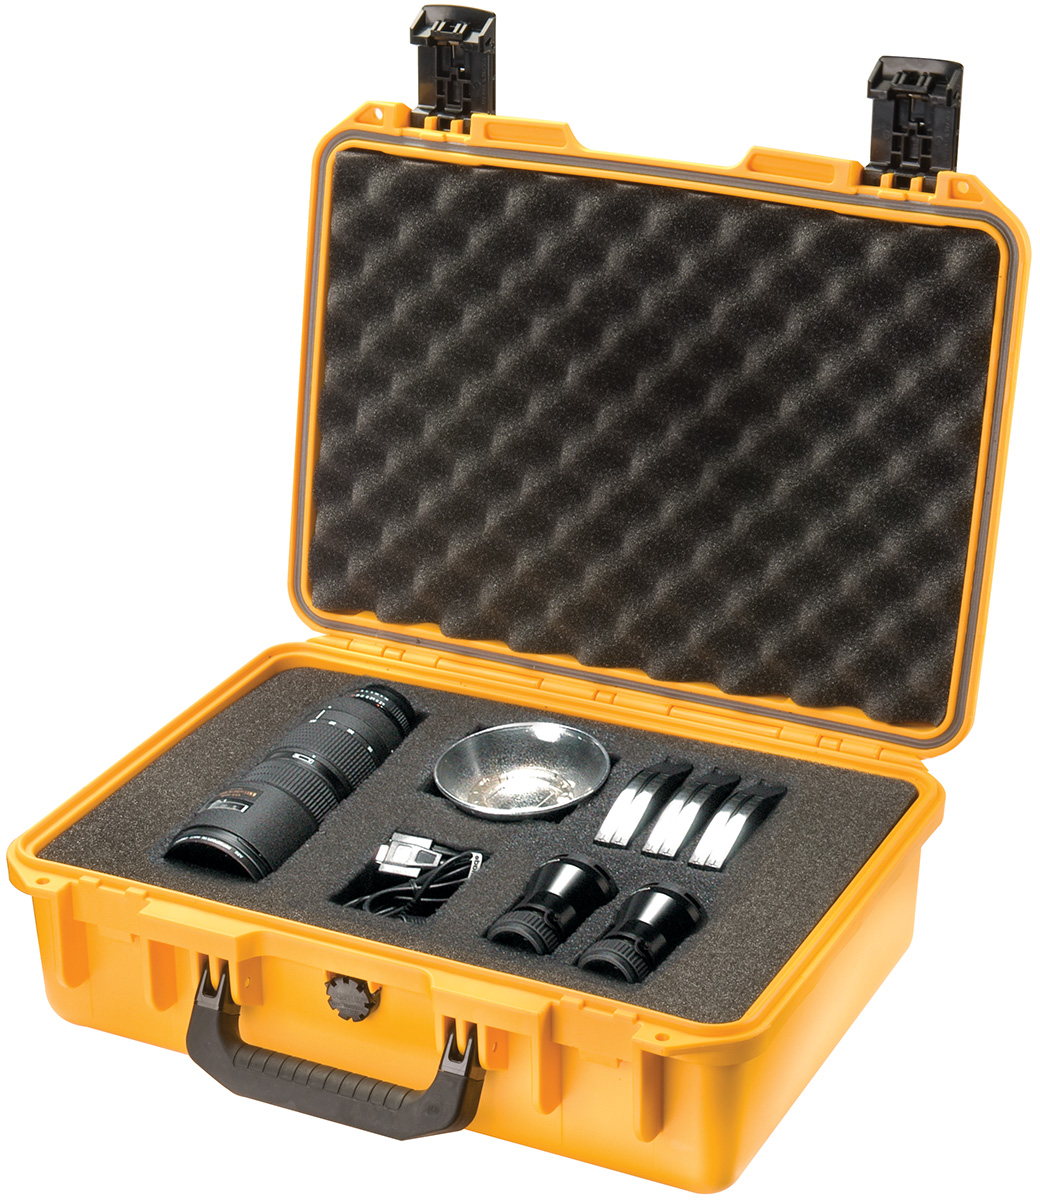 shop pelican storm im2300 buy waterproof hard camera storm case